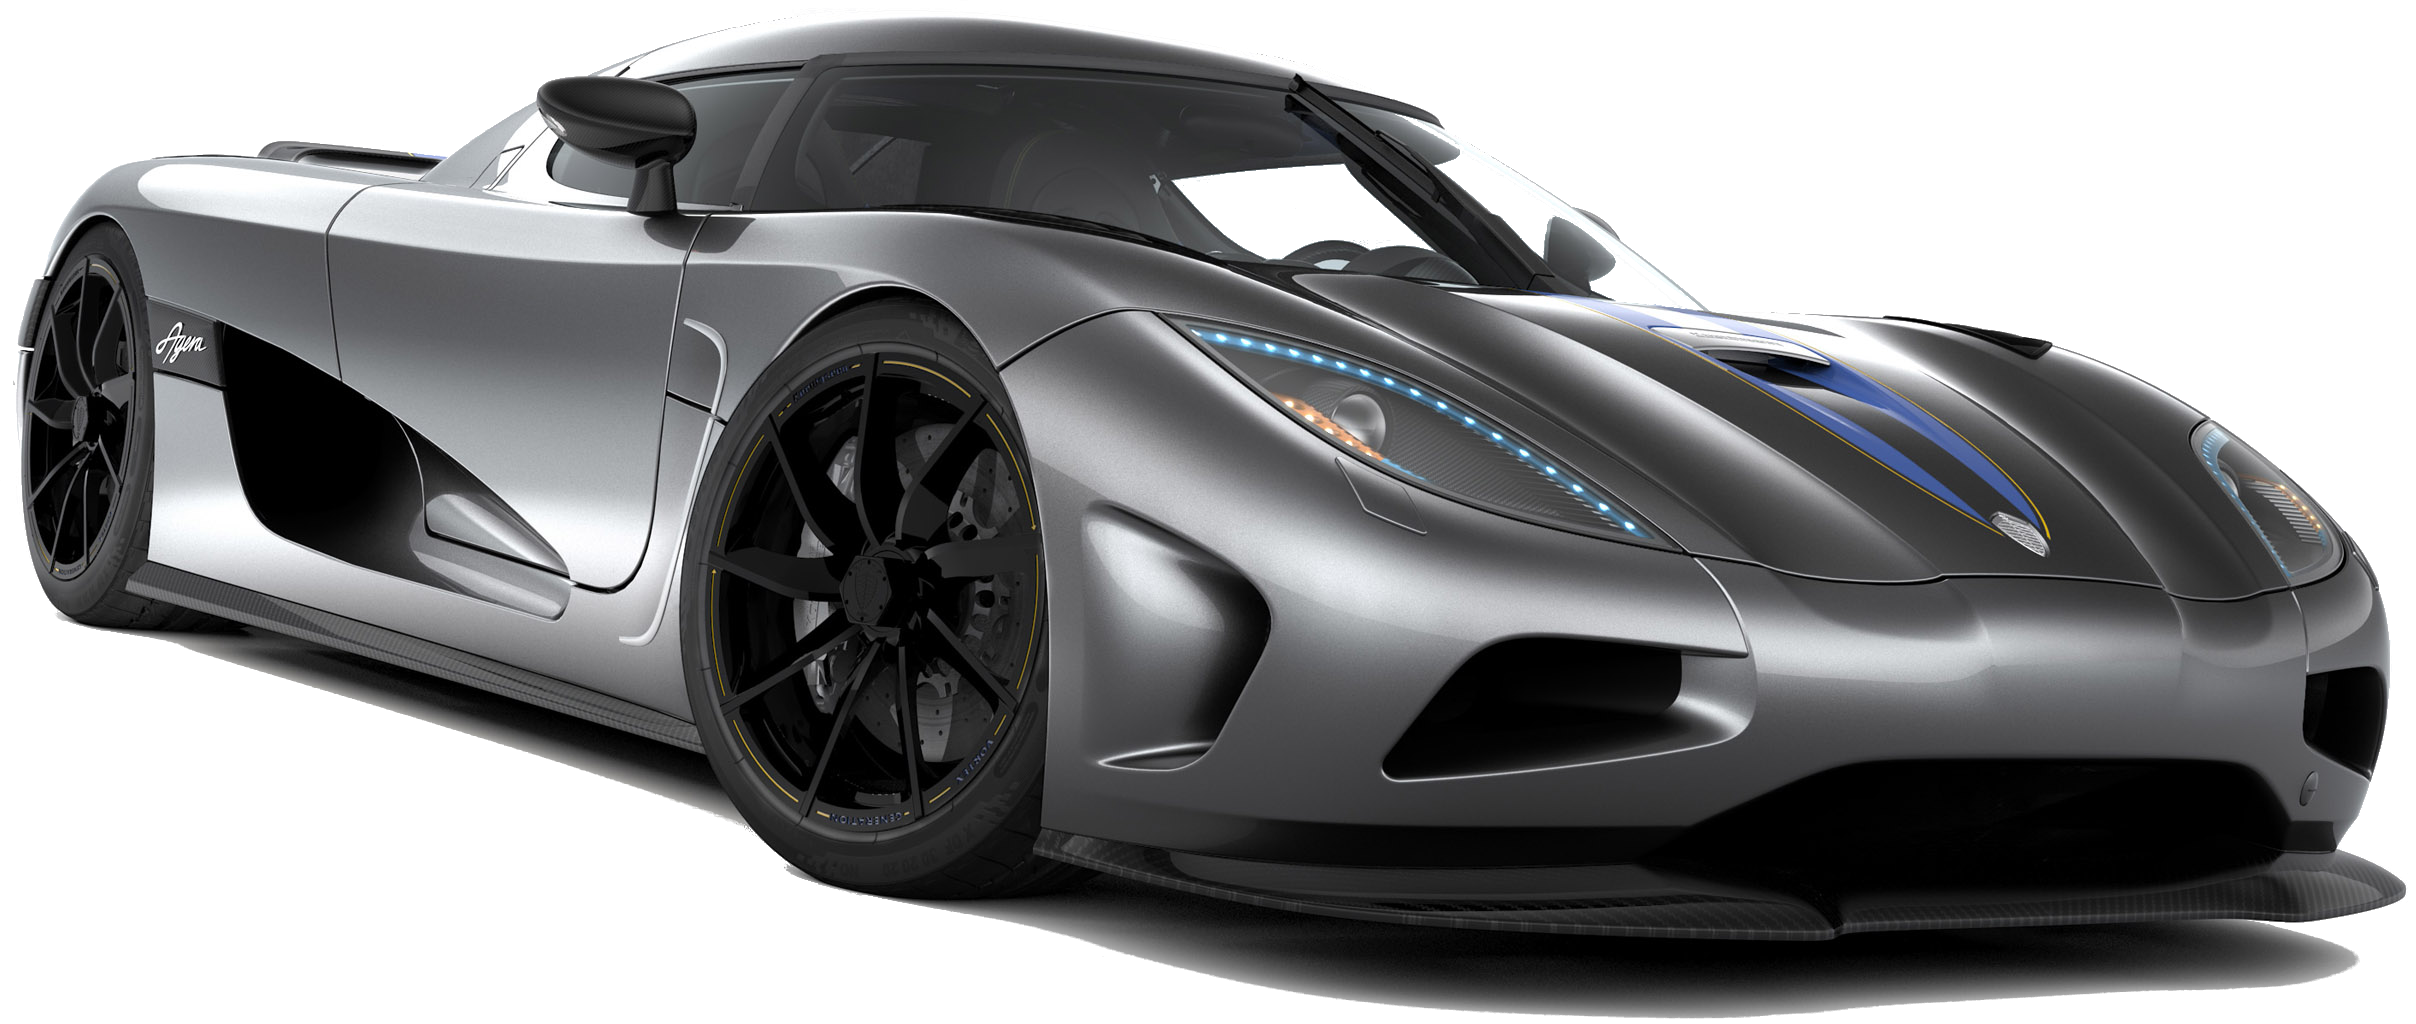 Need For Speed Transparent Image PNG Image